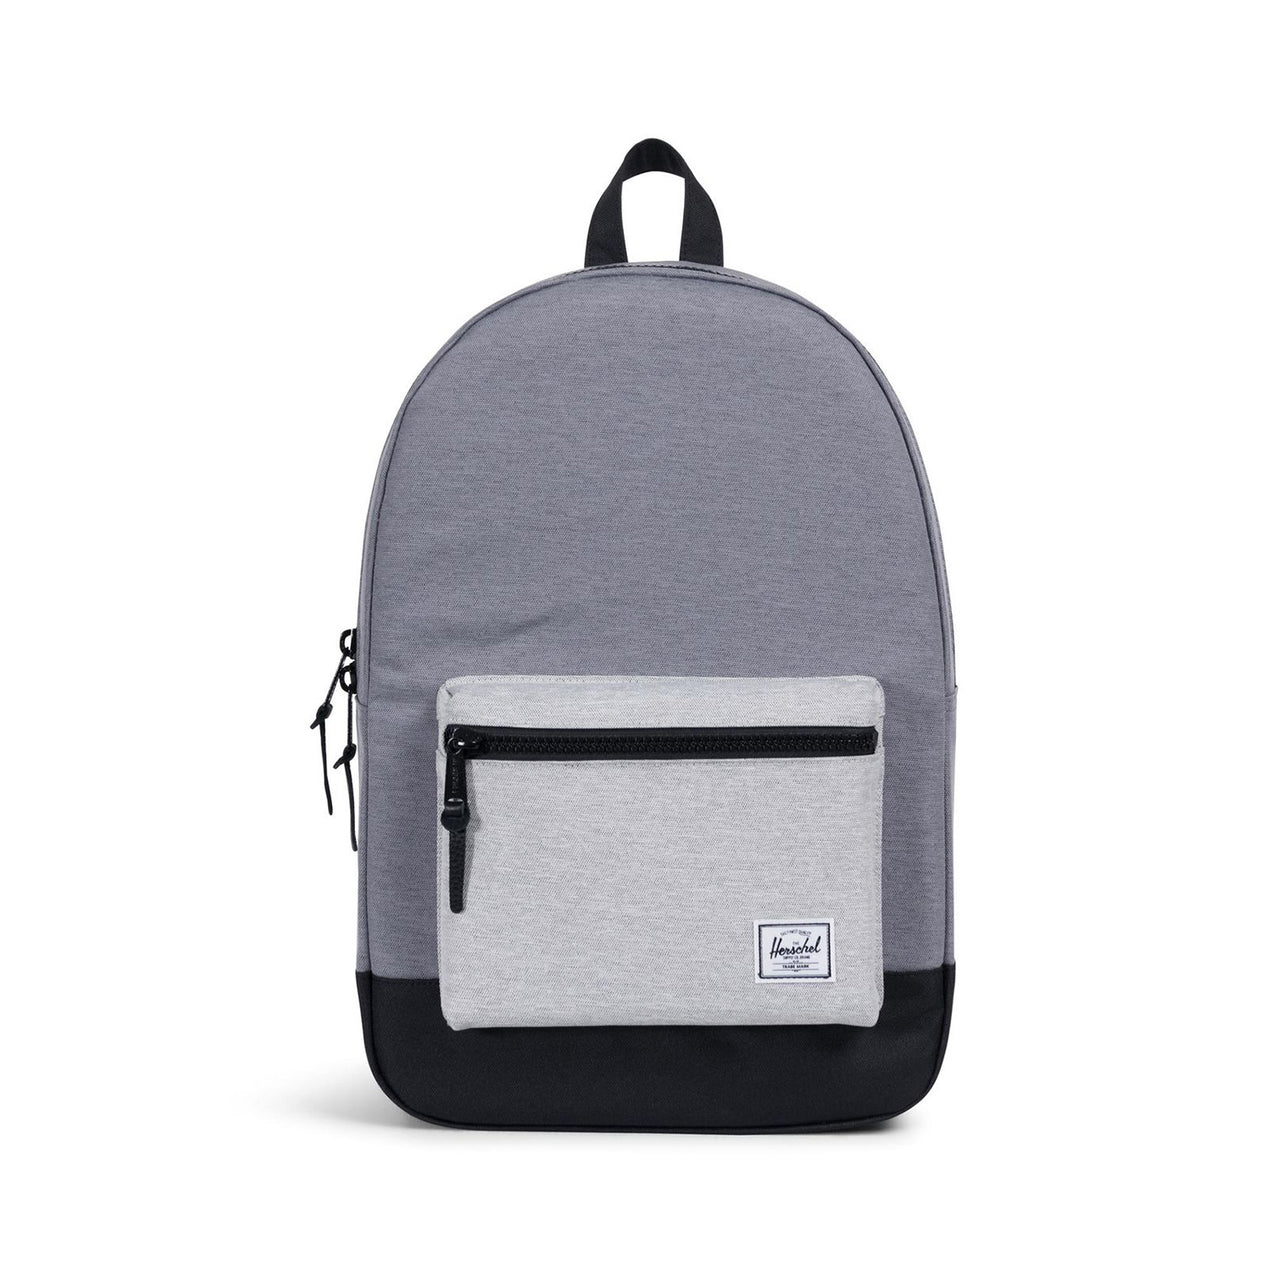 2e3e995625 Herschel Supply Co. Settlement Backpack Mid Grey Crosshatch - Black - Light  Grey Crosshatch